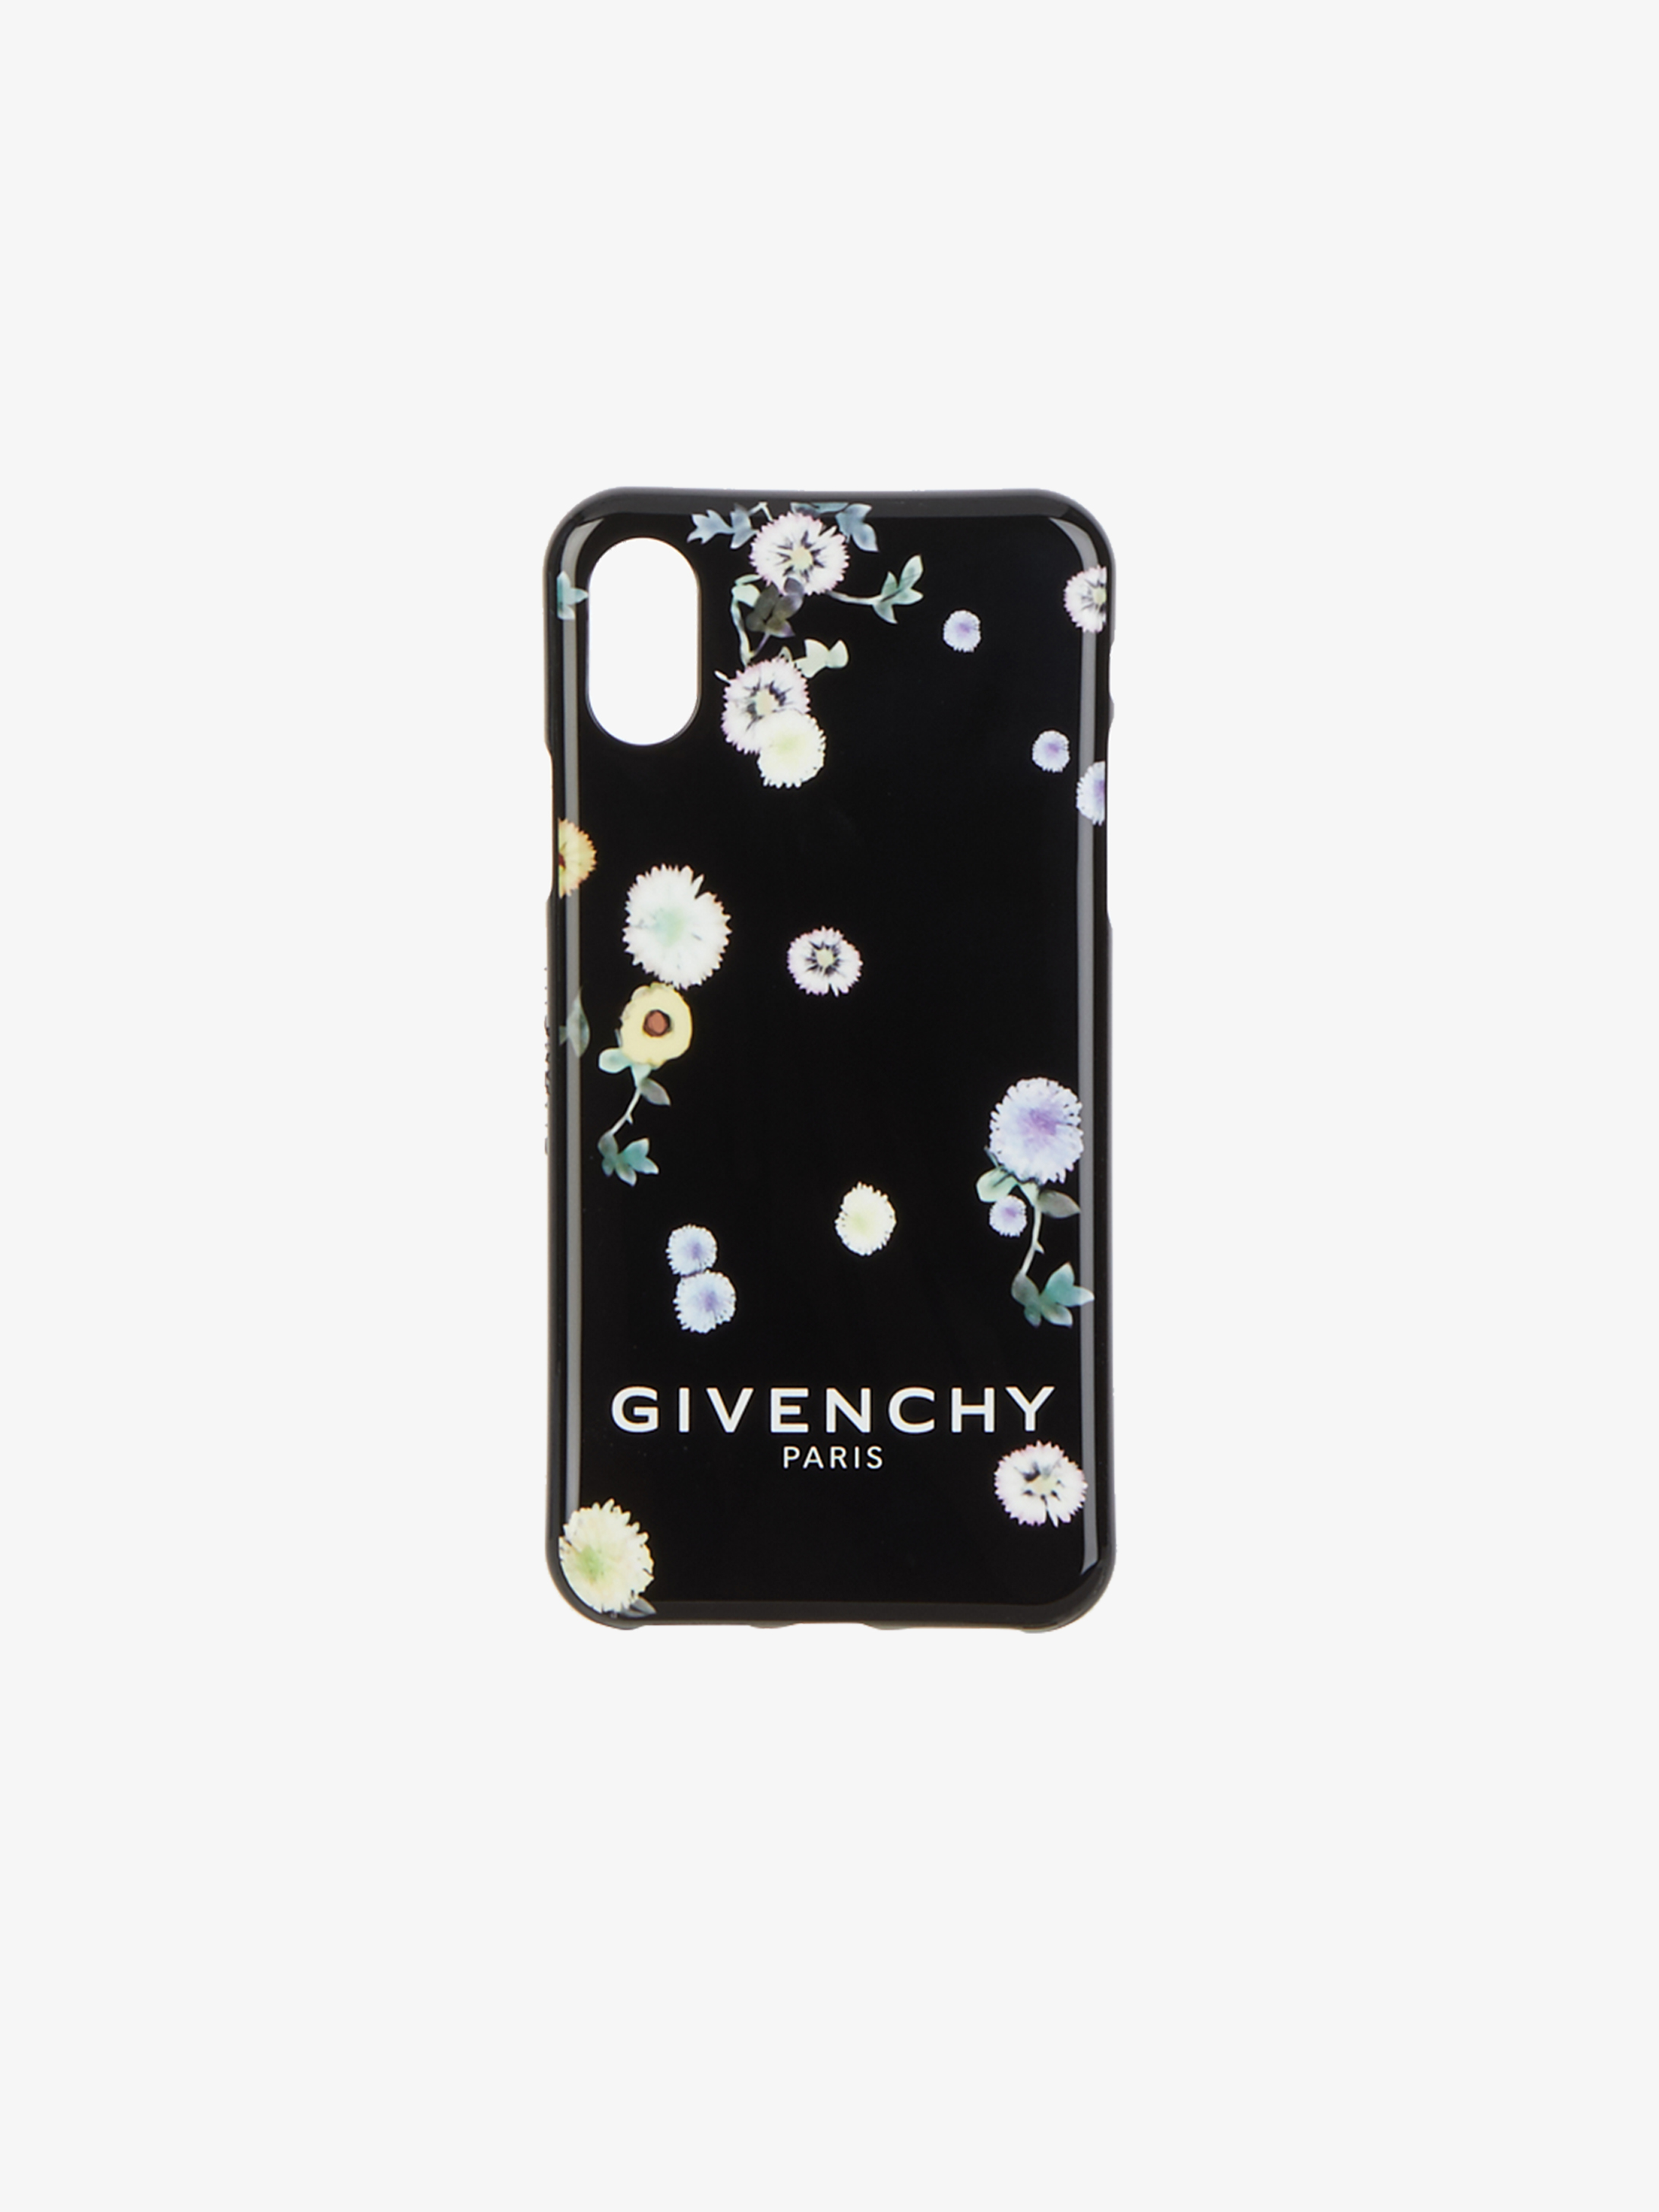 Coque iPhone GIVENCHY floral